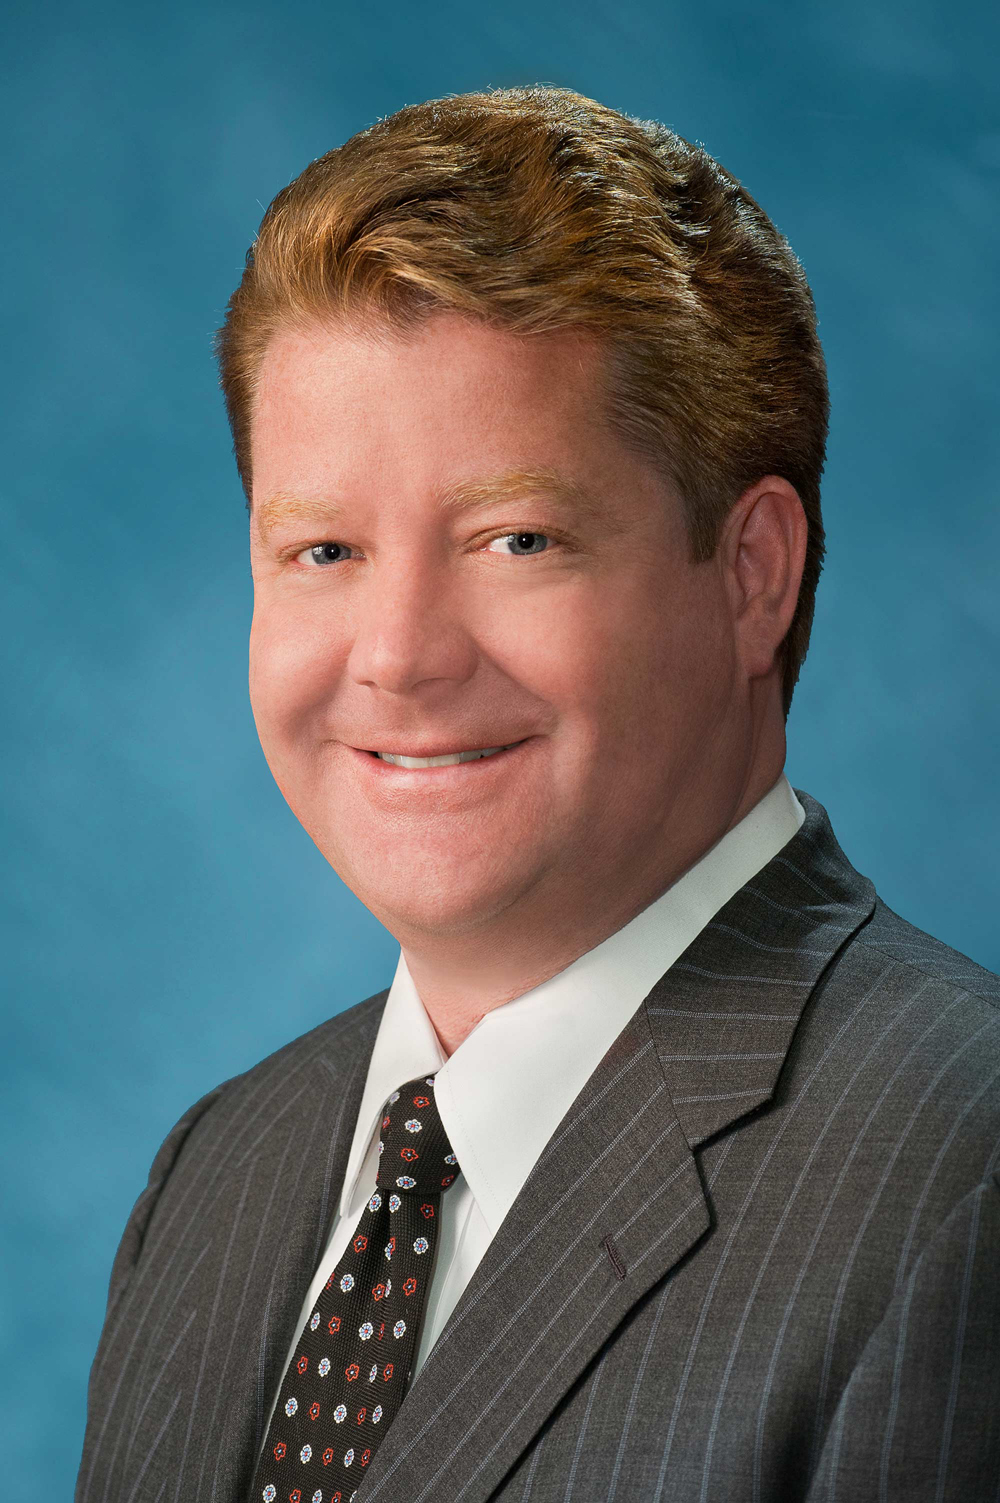 Photo of Dr. Joseph Hickey, Assistant Superintendent for Special Education and Pupil Services